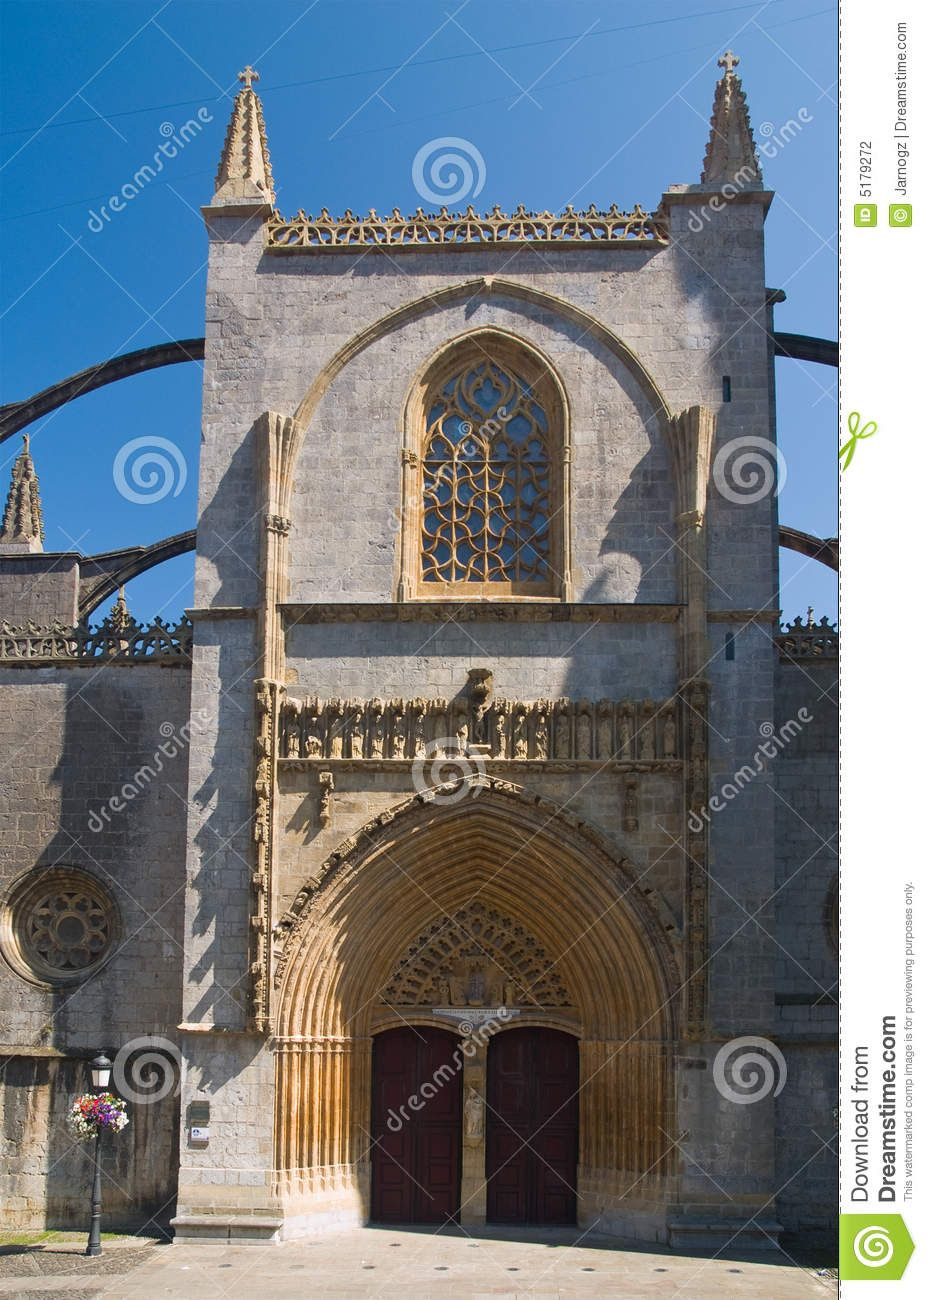 The Basque Country | Gothic Basilica In Lekeitio, Basque Country, Spain Stock Photography ...